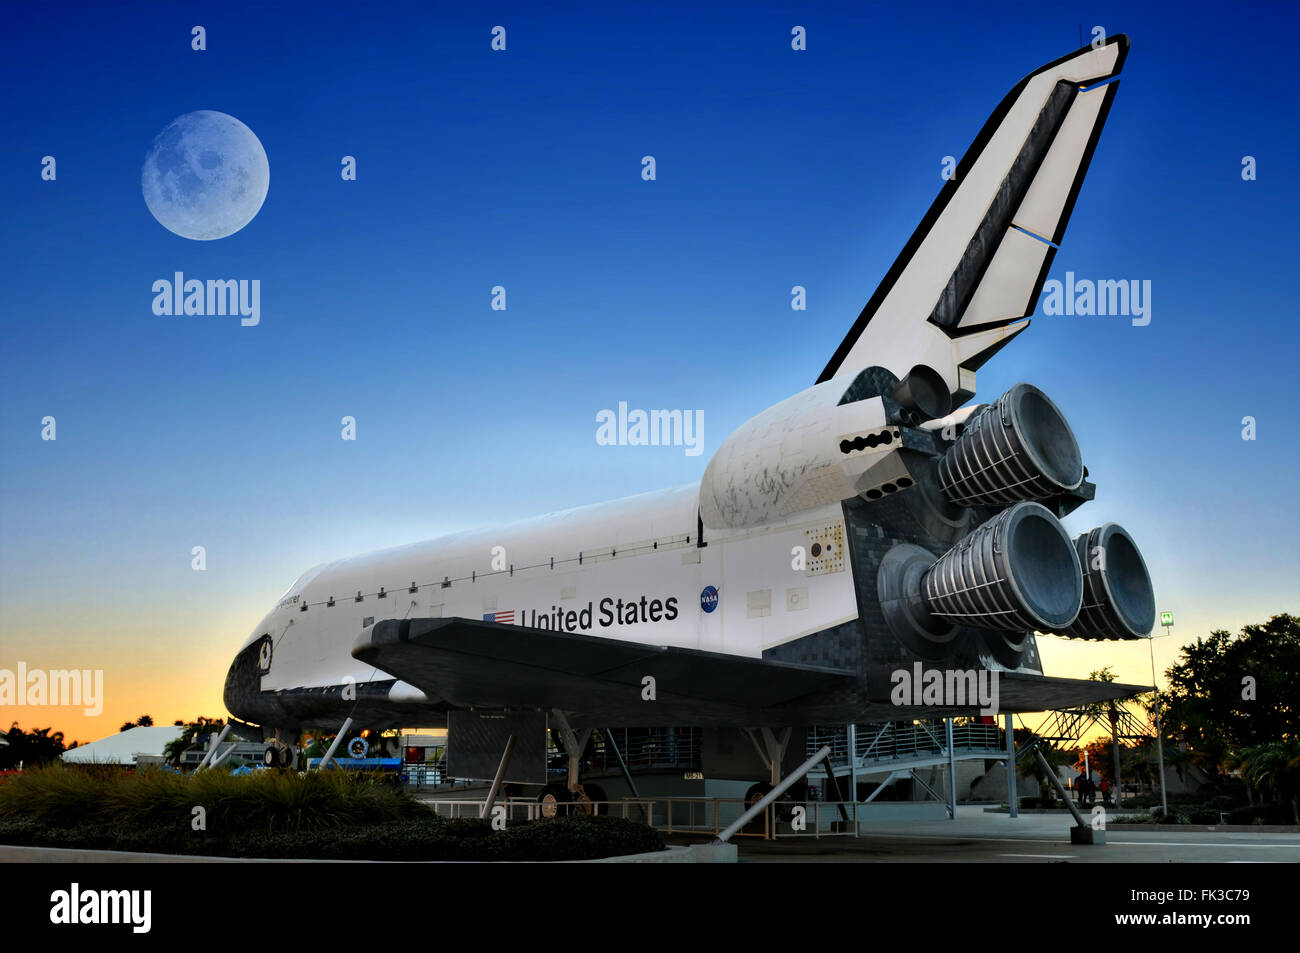 CAPE CANAVERAL, FL- DEC 28: The Space Shuttle Explorer displayed at NASA, Kennedy Space Center in Florida on December - Stock Image